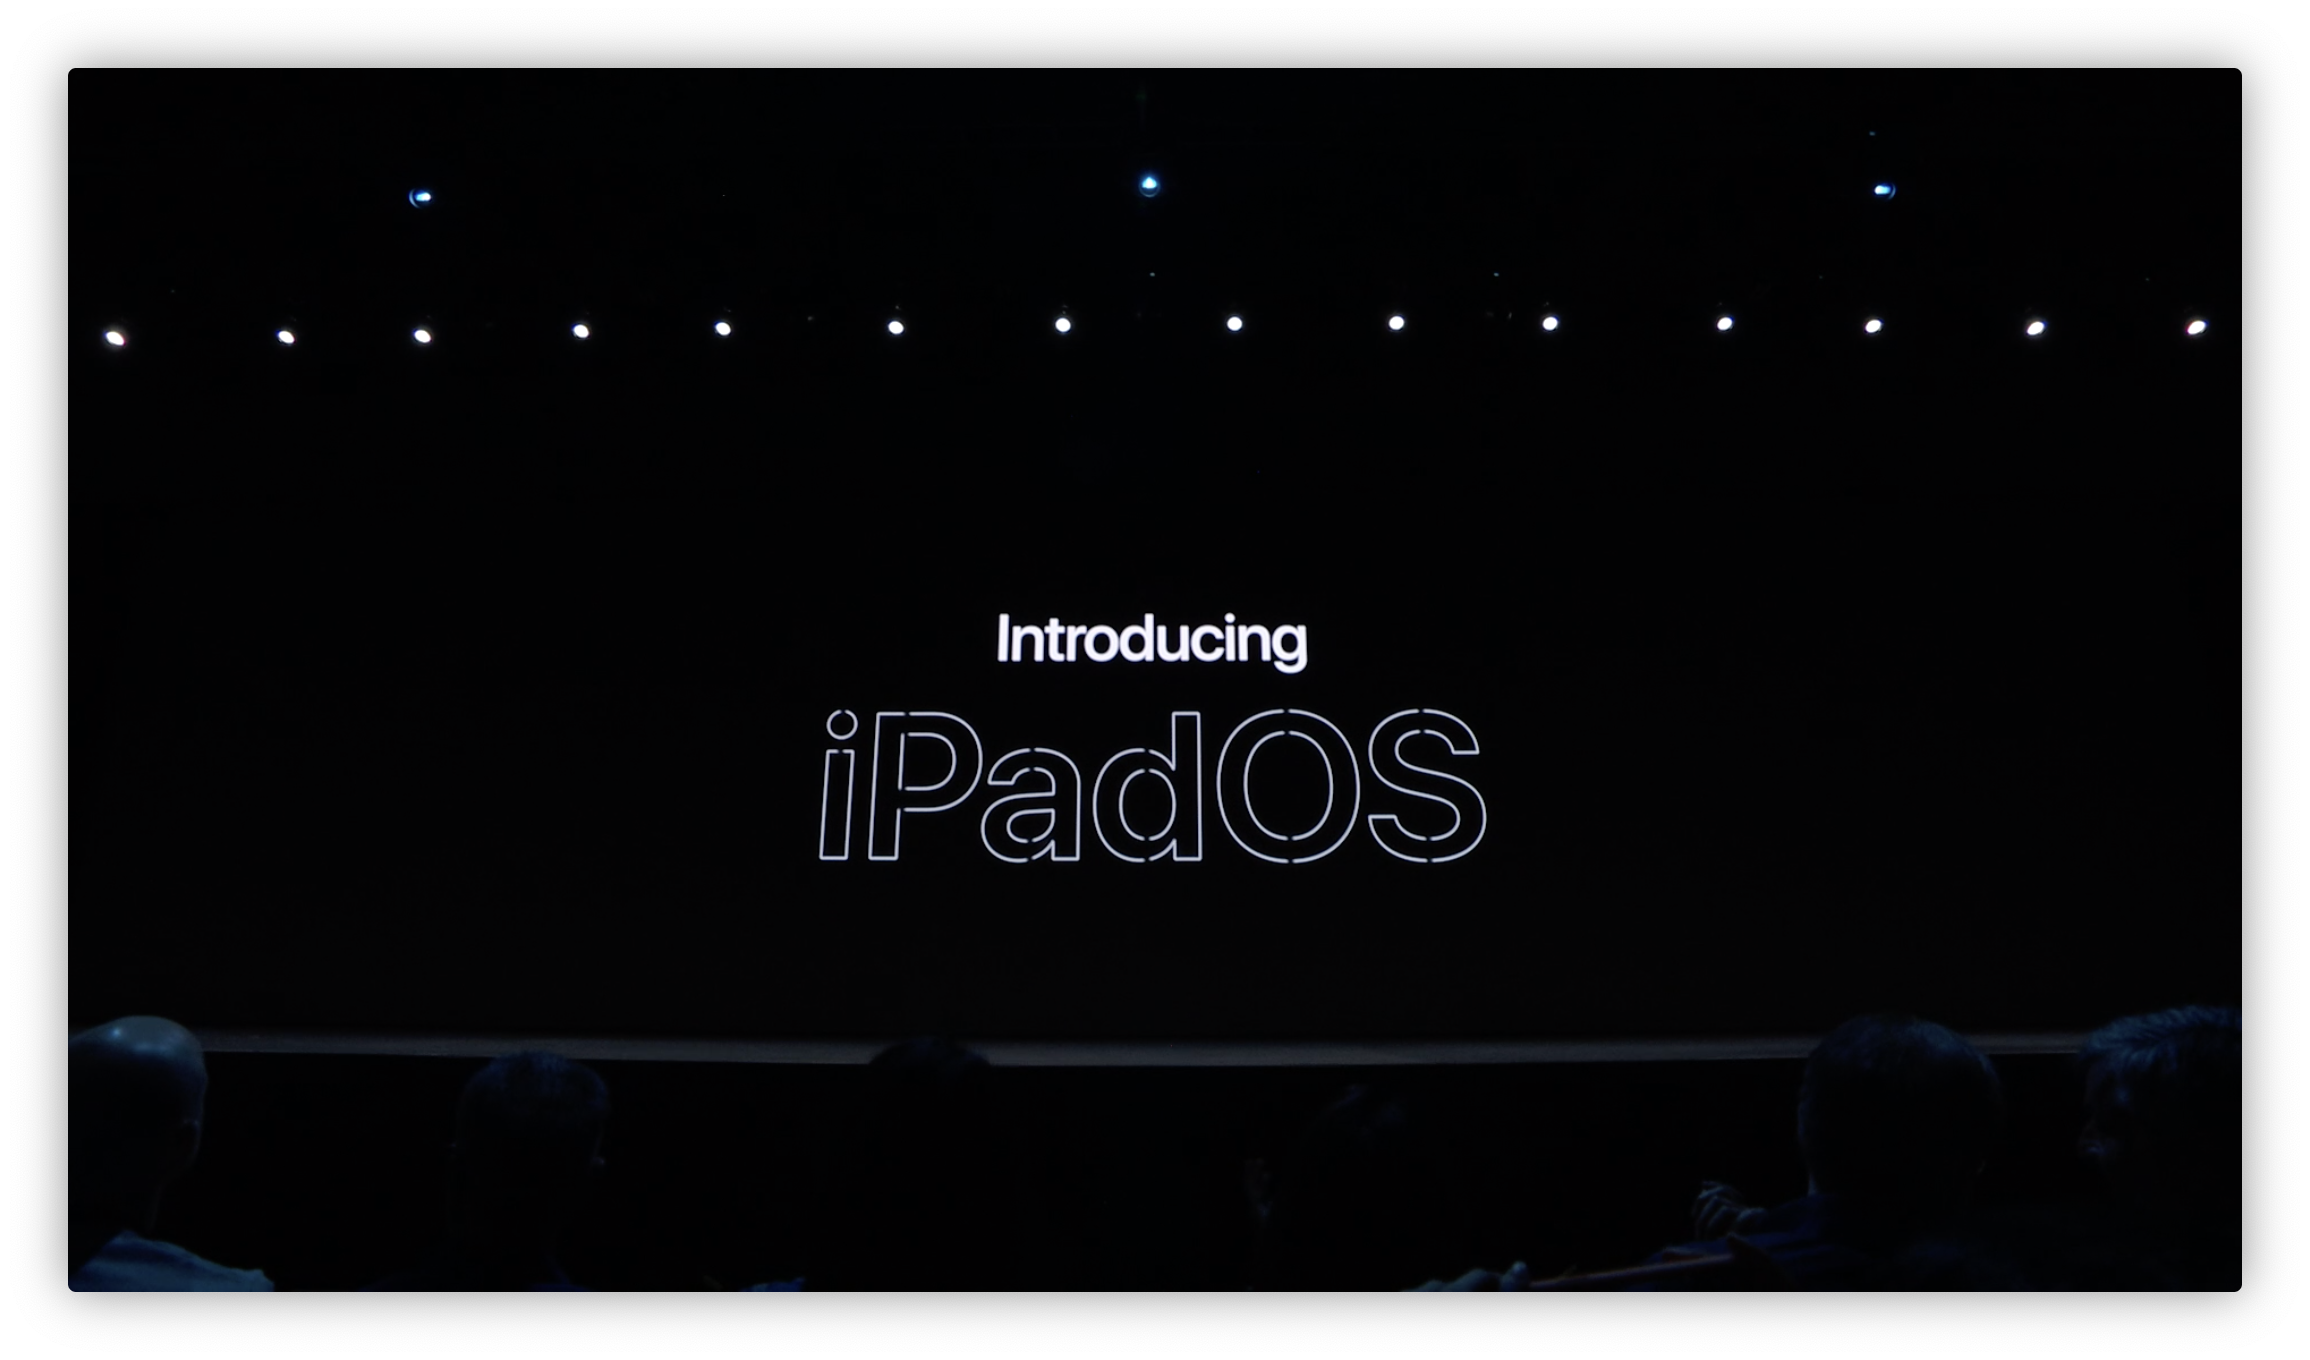 Official iPadOS: a completely new platform for iPad